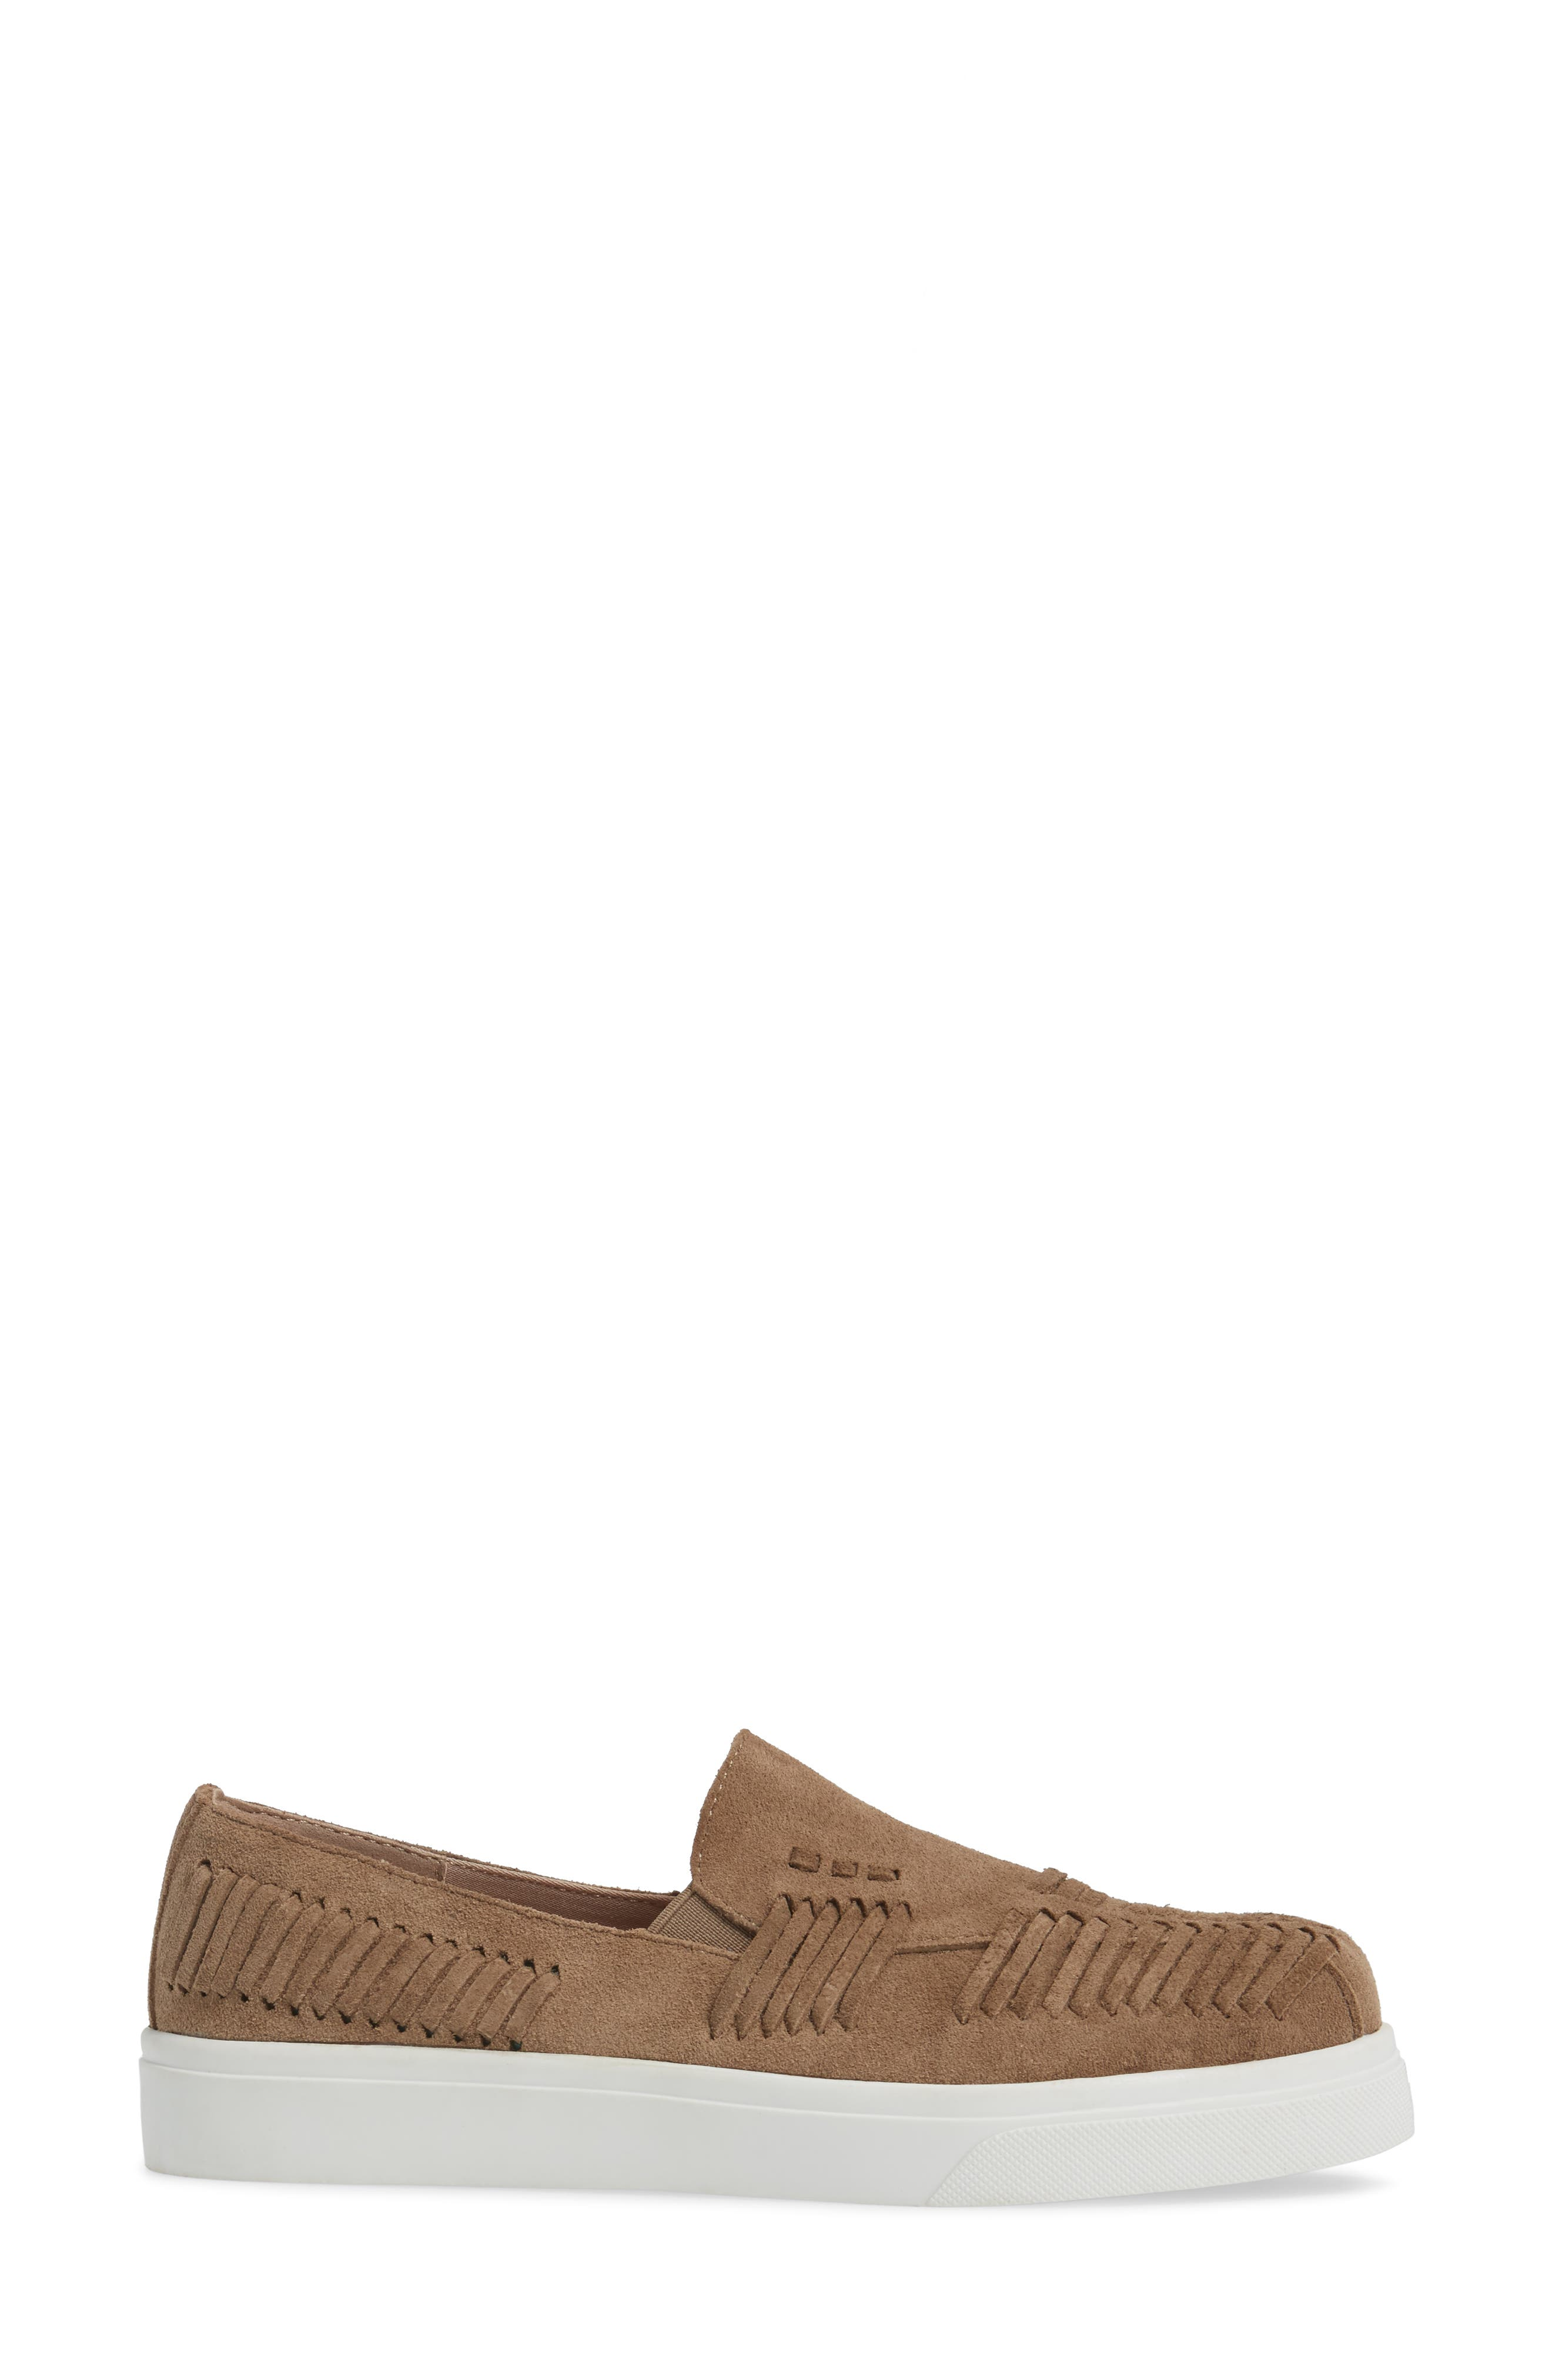 Rocco Woven Slip-On Sneaker,                             Alternate thumbnail 3, color,                             Taupe Suede